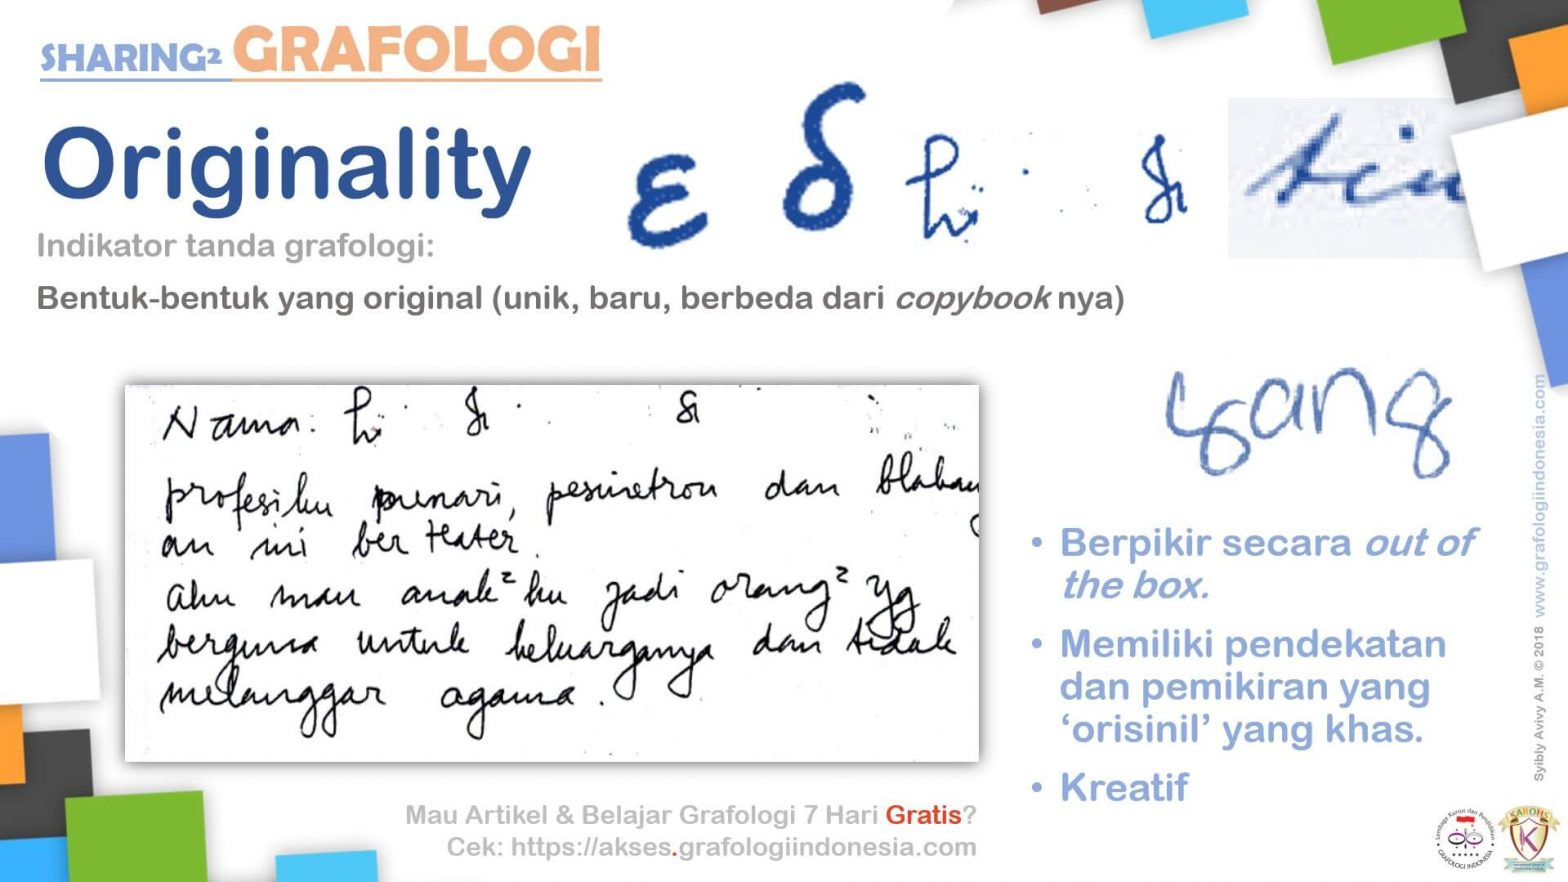 Sharing Grafologi - Originality